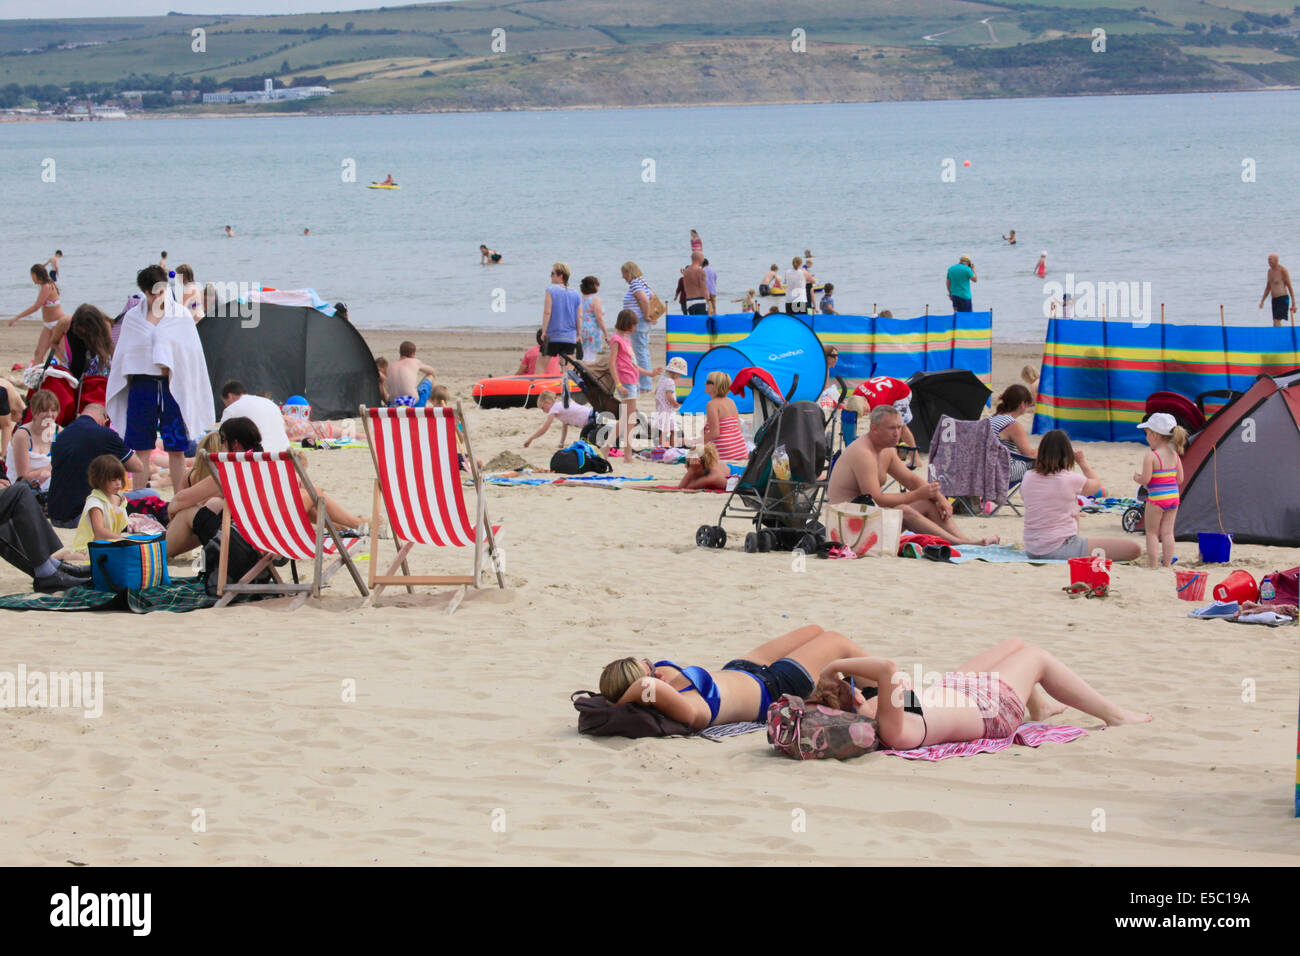 Weymouth Beach, Dorset, UK. 27th July 2014. UK Weather: Crowds flock to Weymouth Beach as the heat wave continues. - Stock Image